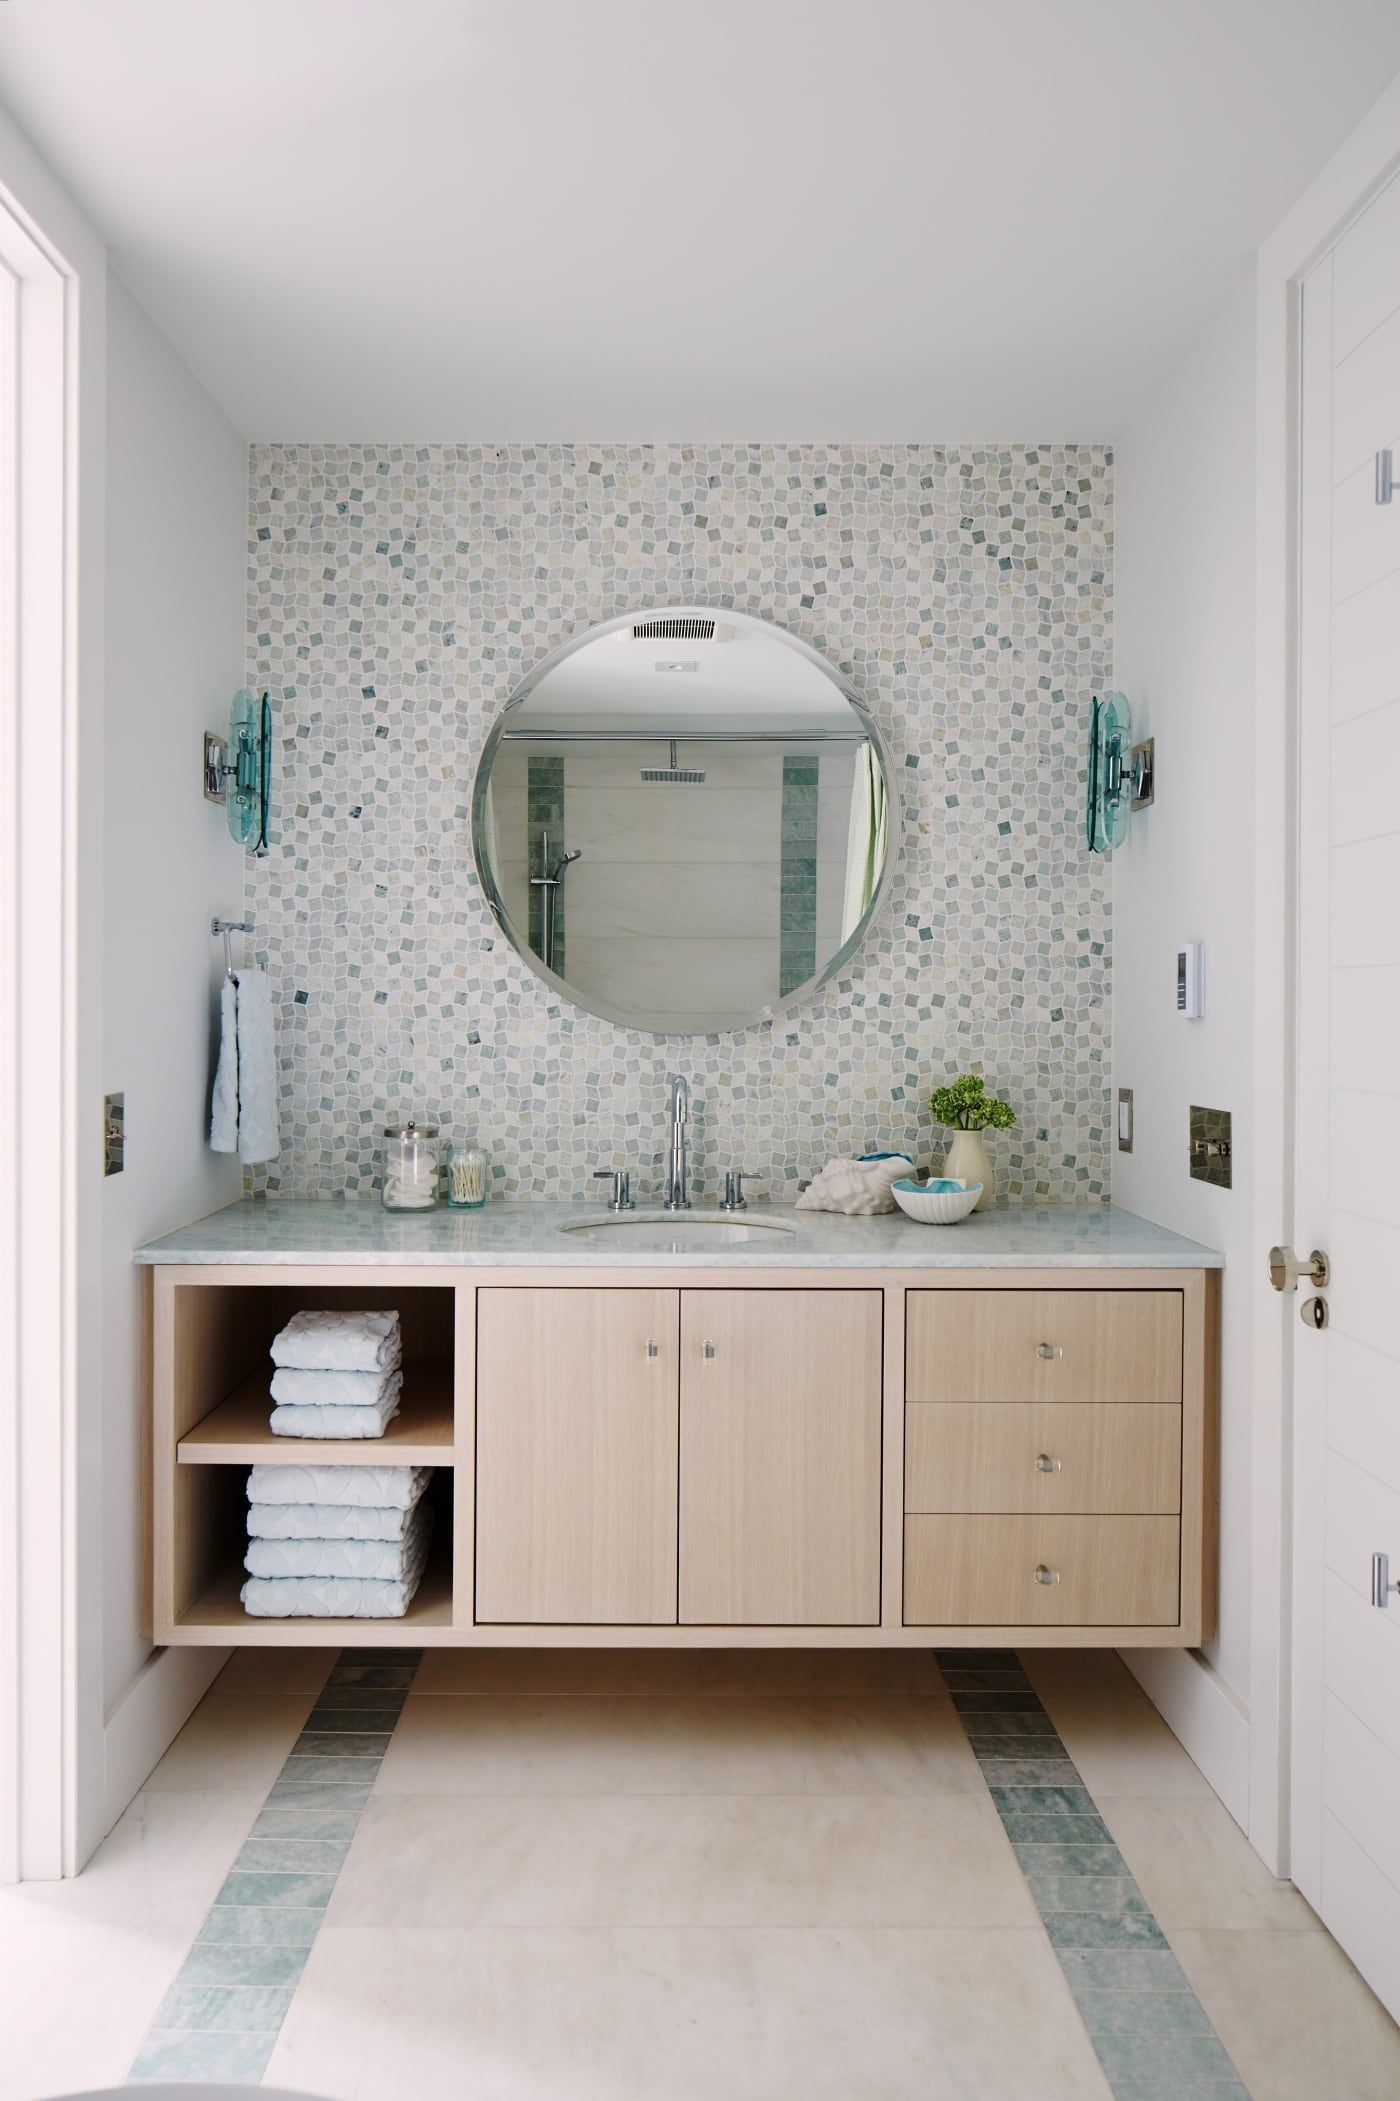 Tile Behind No Side Splash City Modern Fiona S Bathroom Vanity With Mirror Floating